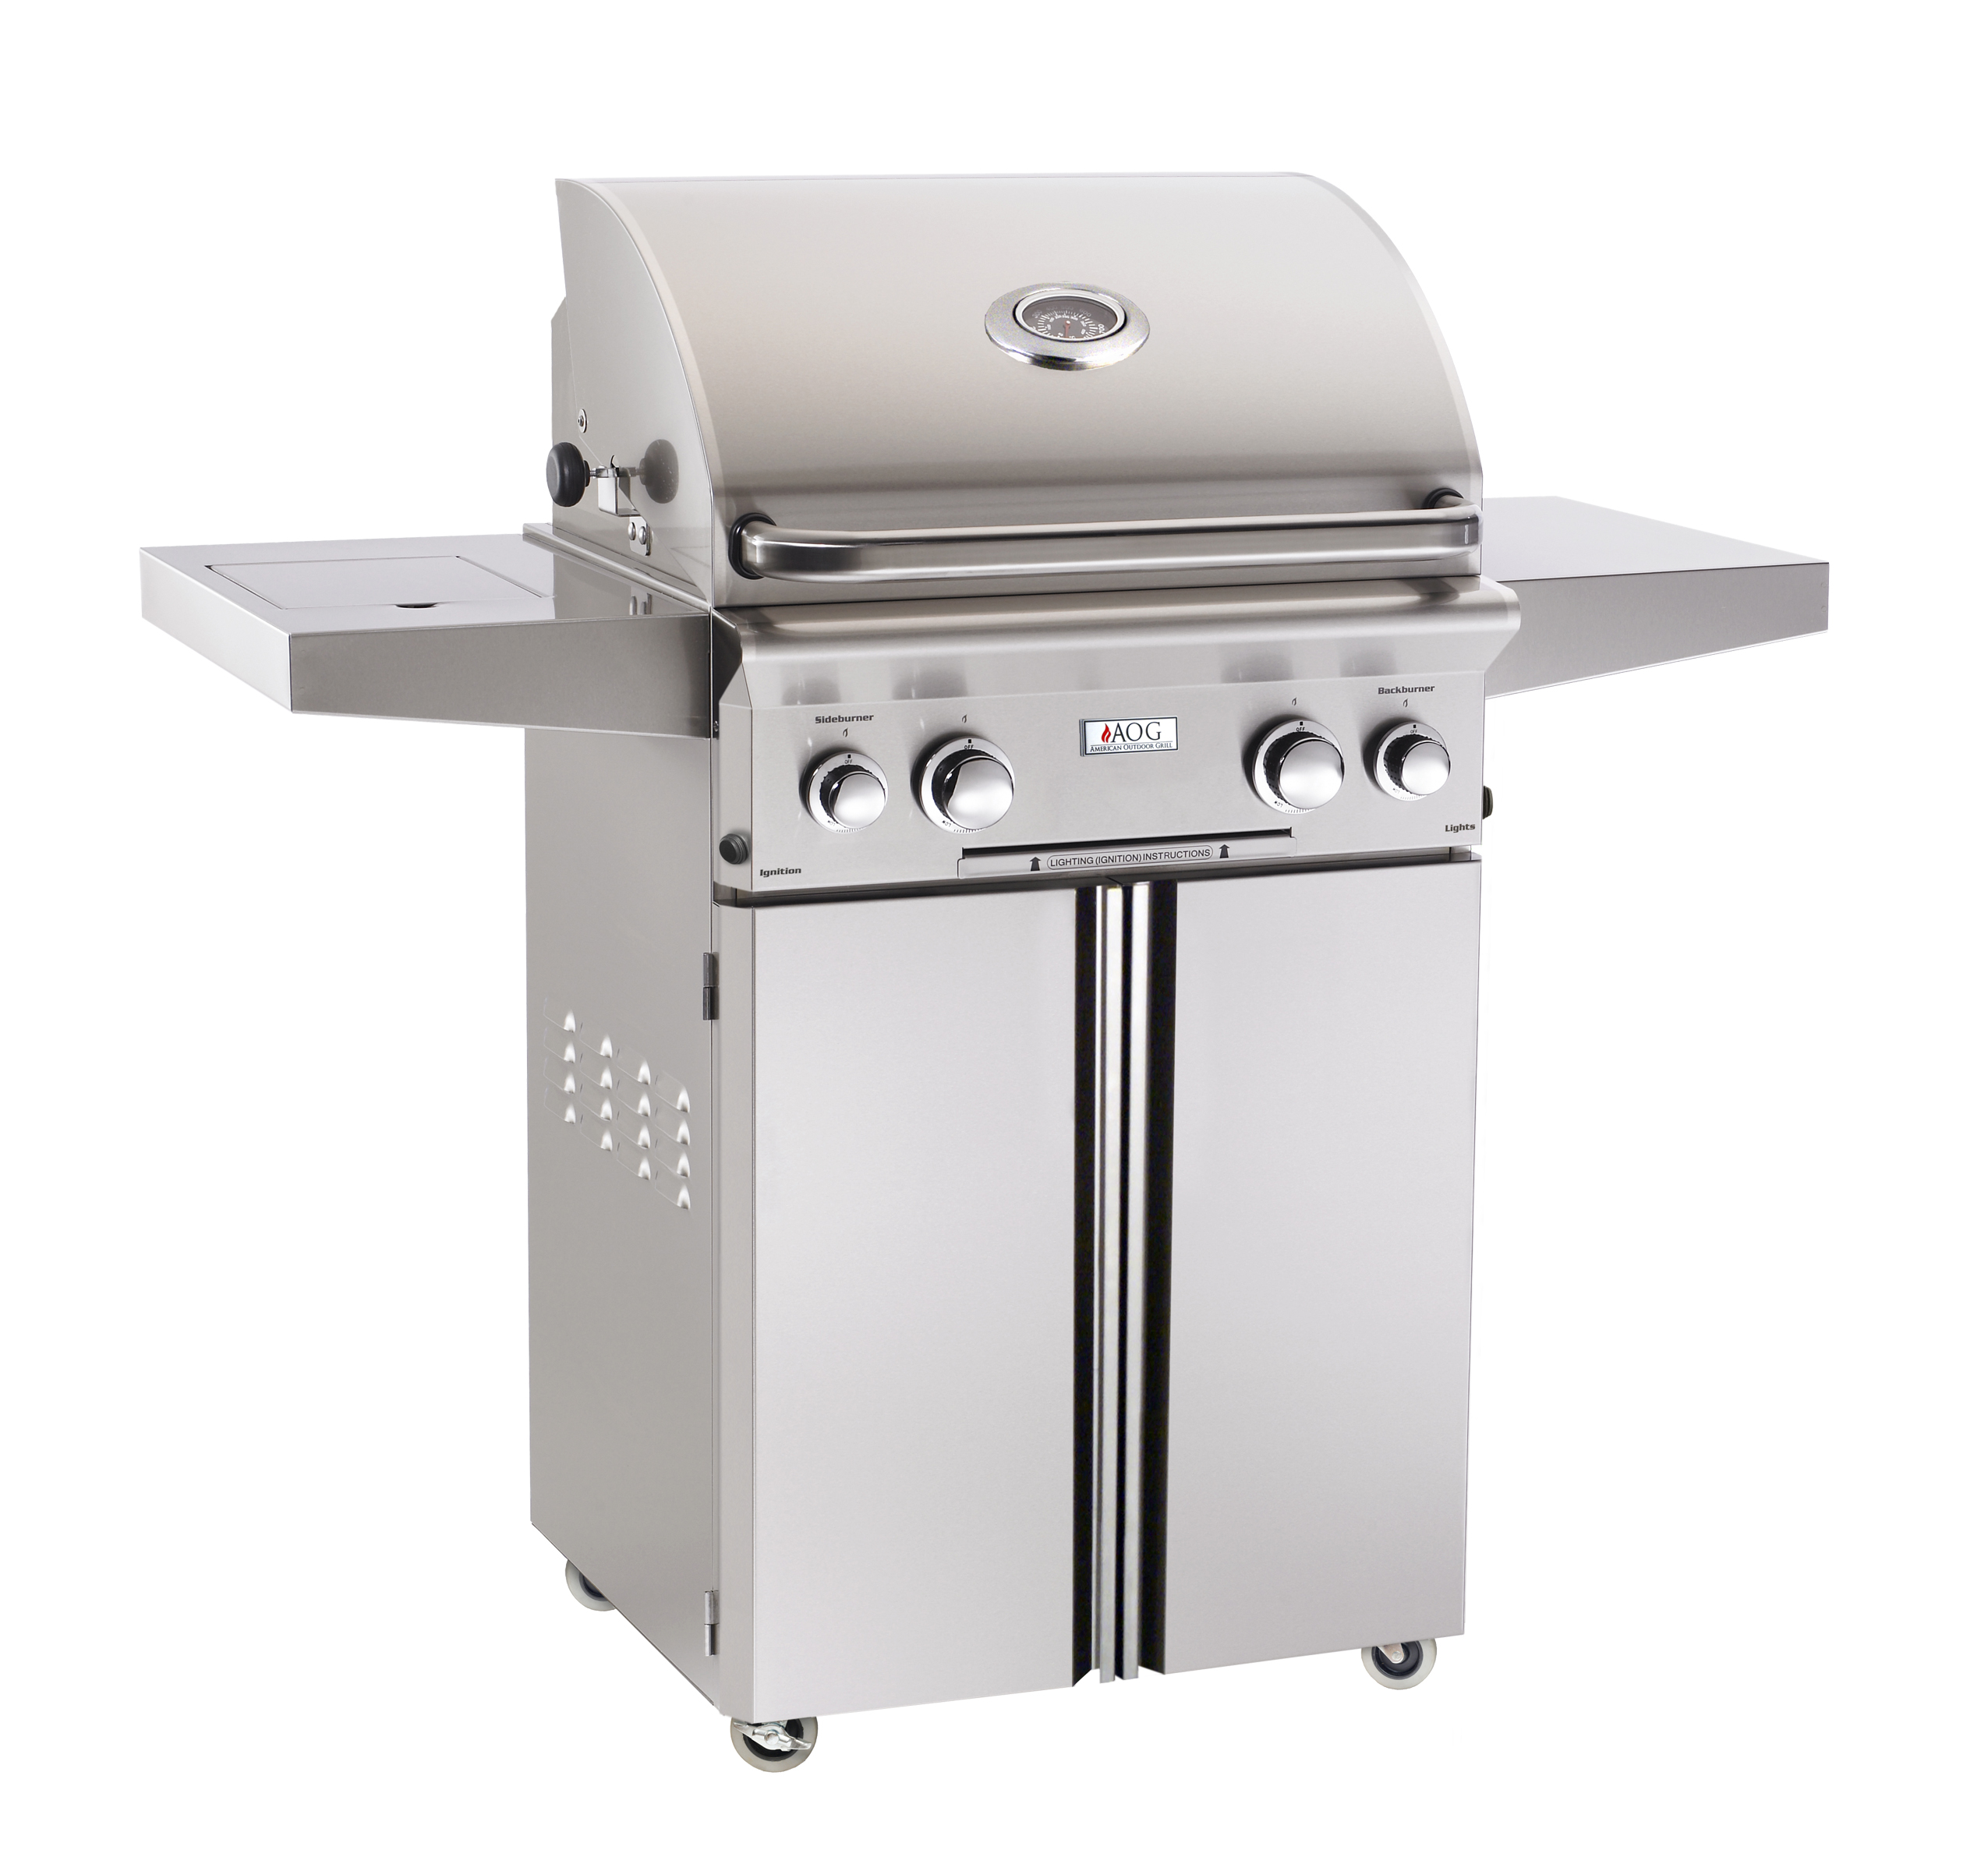 aog-24pcl-24-l-series-portable-grill-closed.jpg